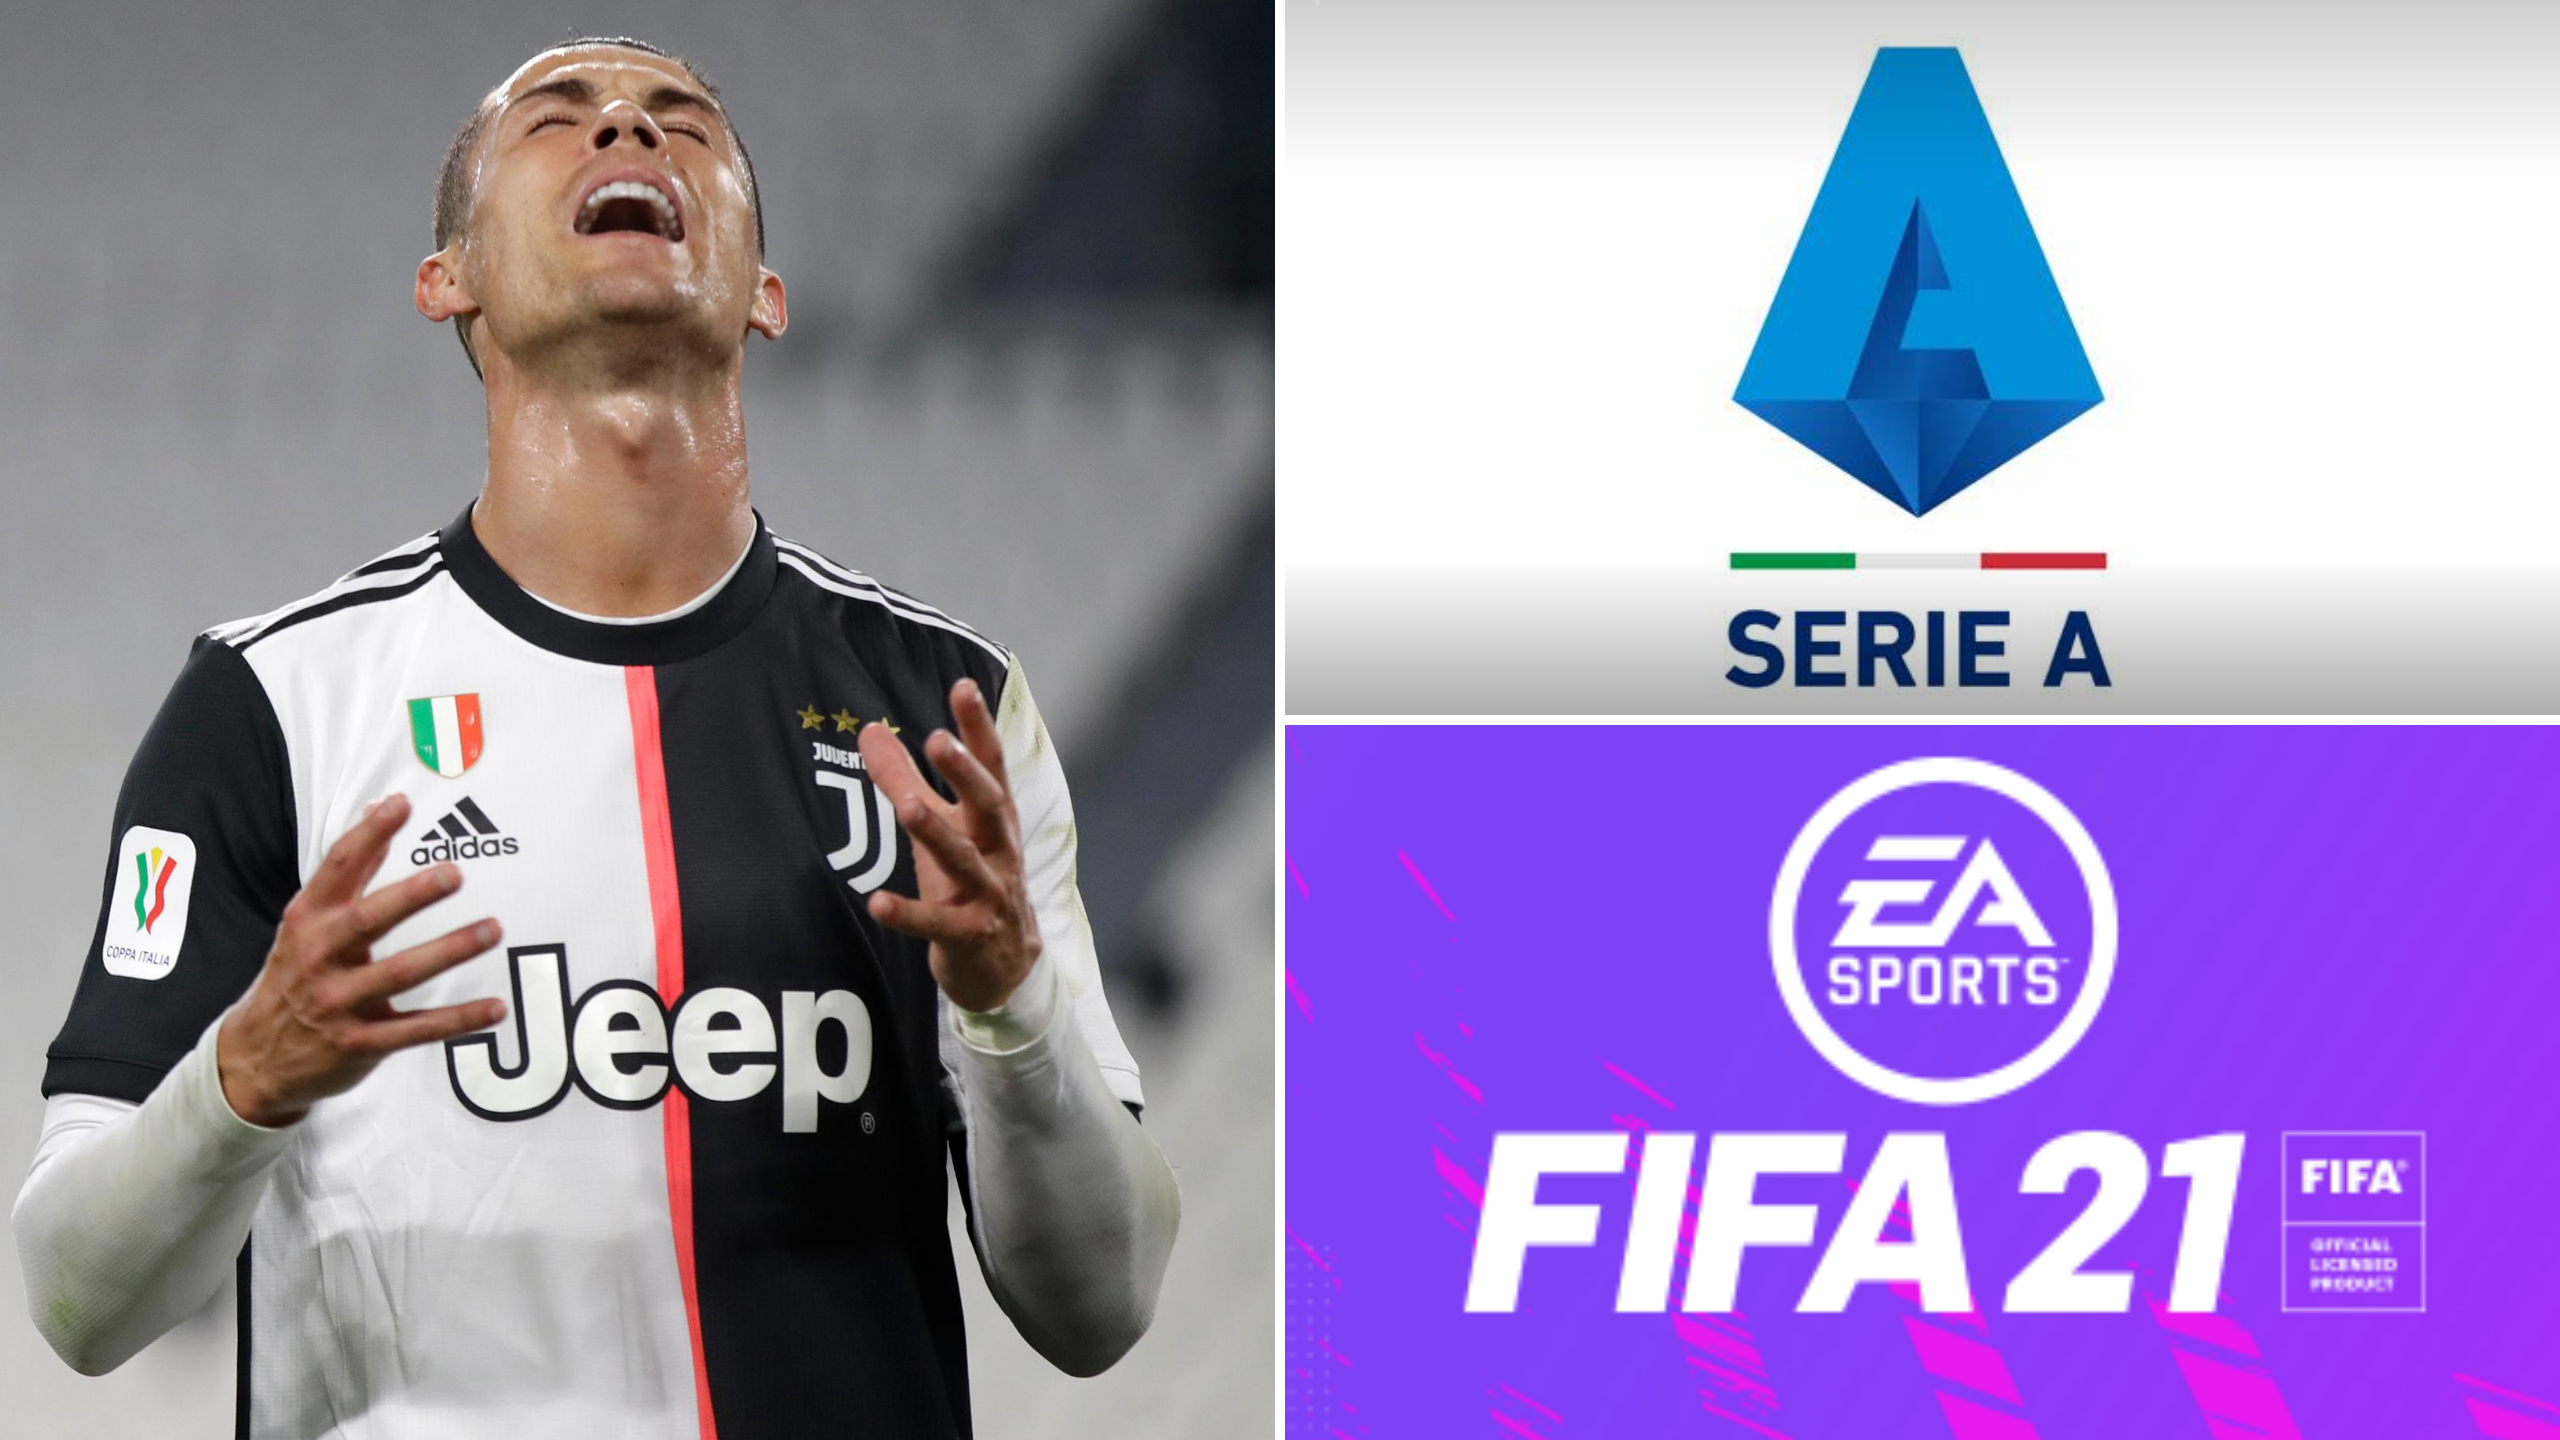 Another Serie A Team Will Be Missing From Fifa 21 Alongside Juventus Sportbible